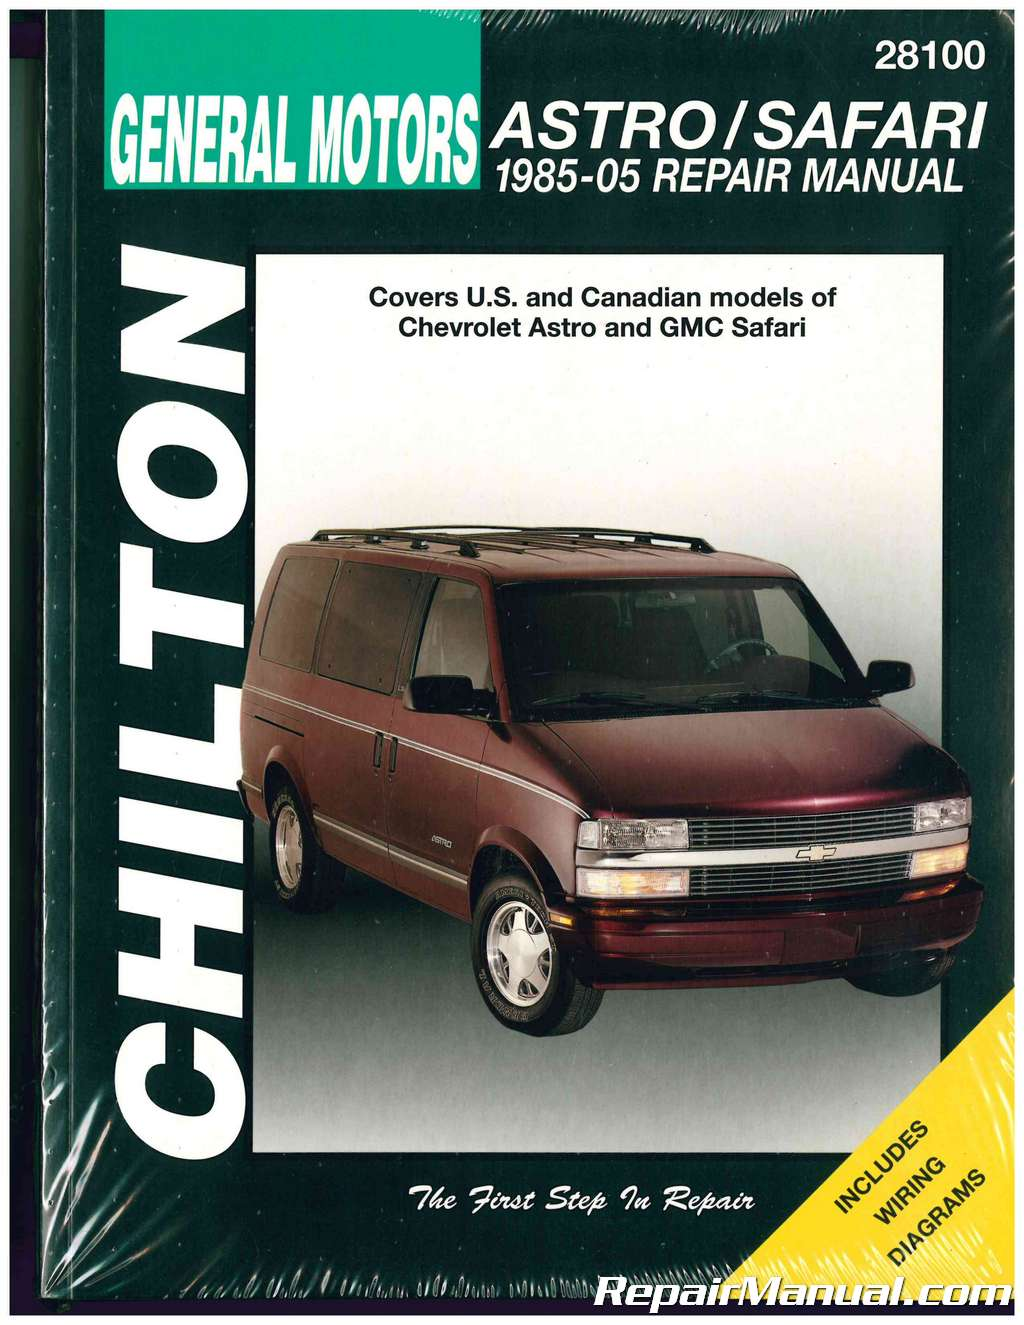 chilton chevrolet astro gmc safari 1985 2005 repair manual rh repairmanual  com 2005 GMC Safari Conversion Van 2003 GMC Safari Van